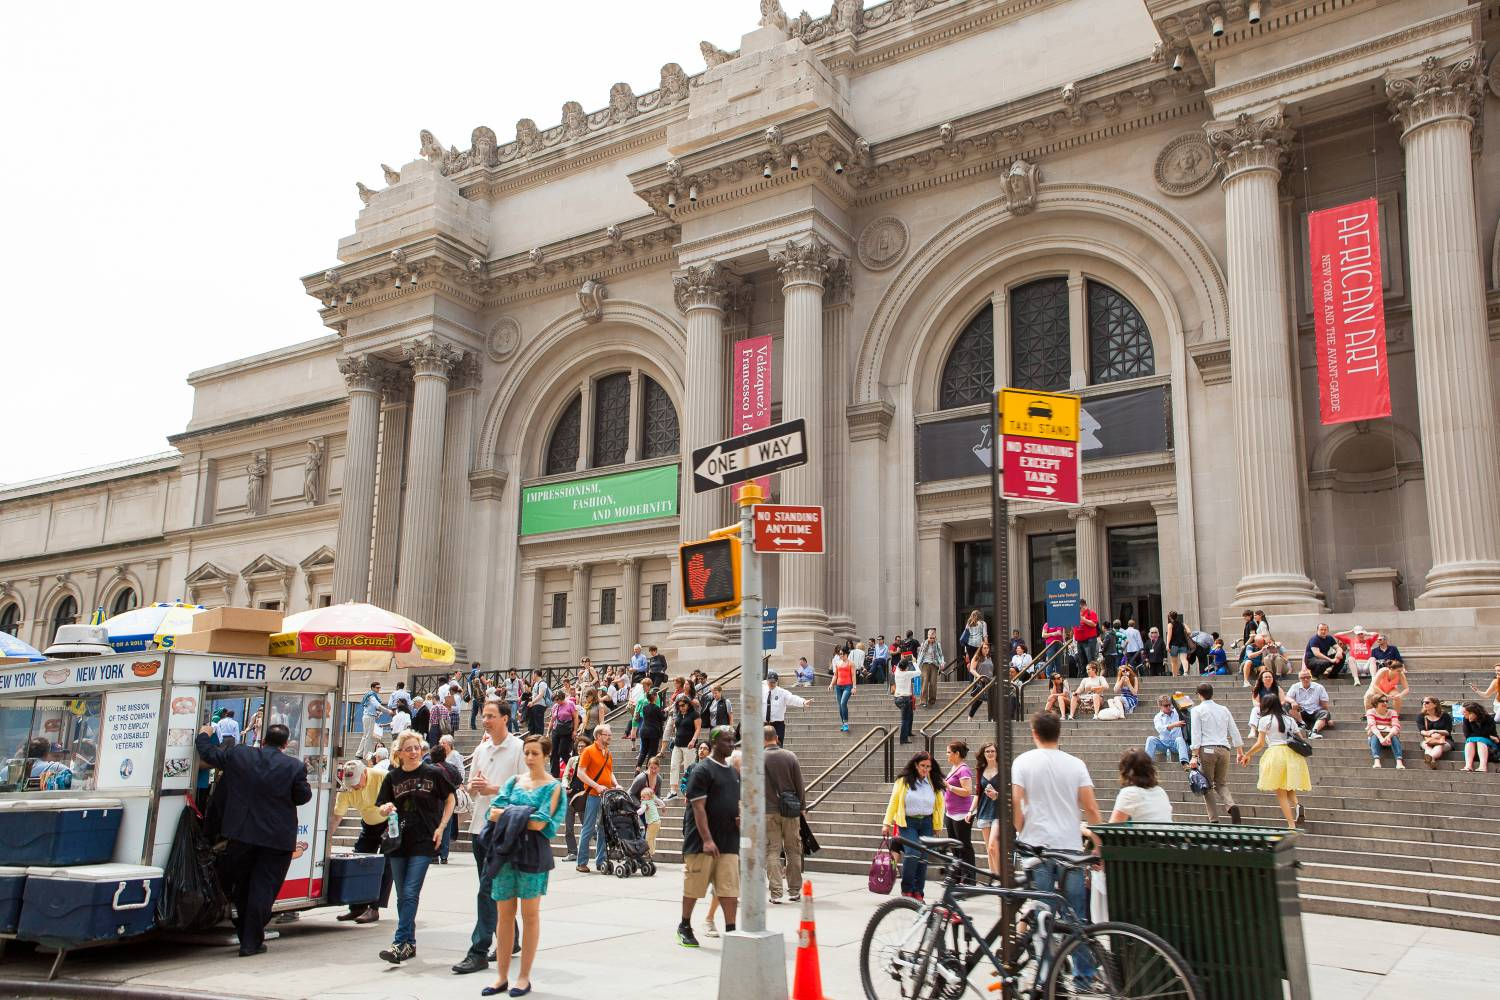 Exterior of the Metropolitan Museum of Art located on the Museum Mile